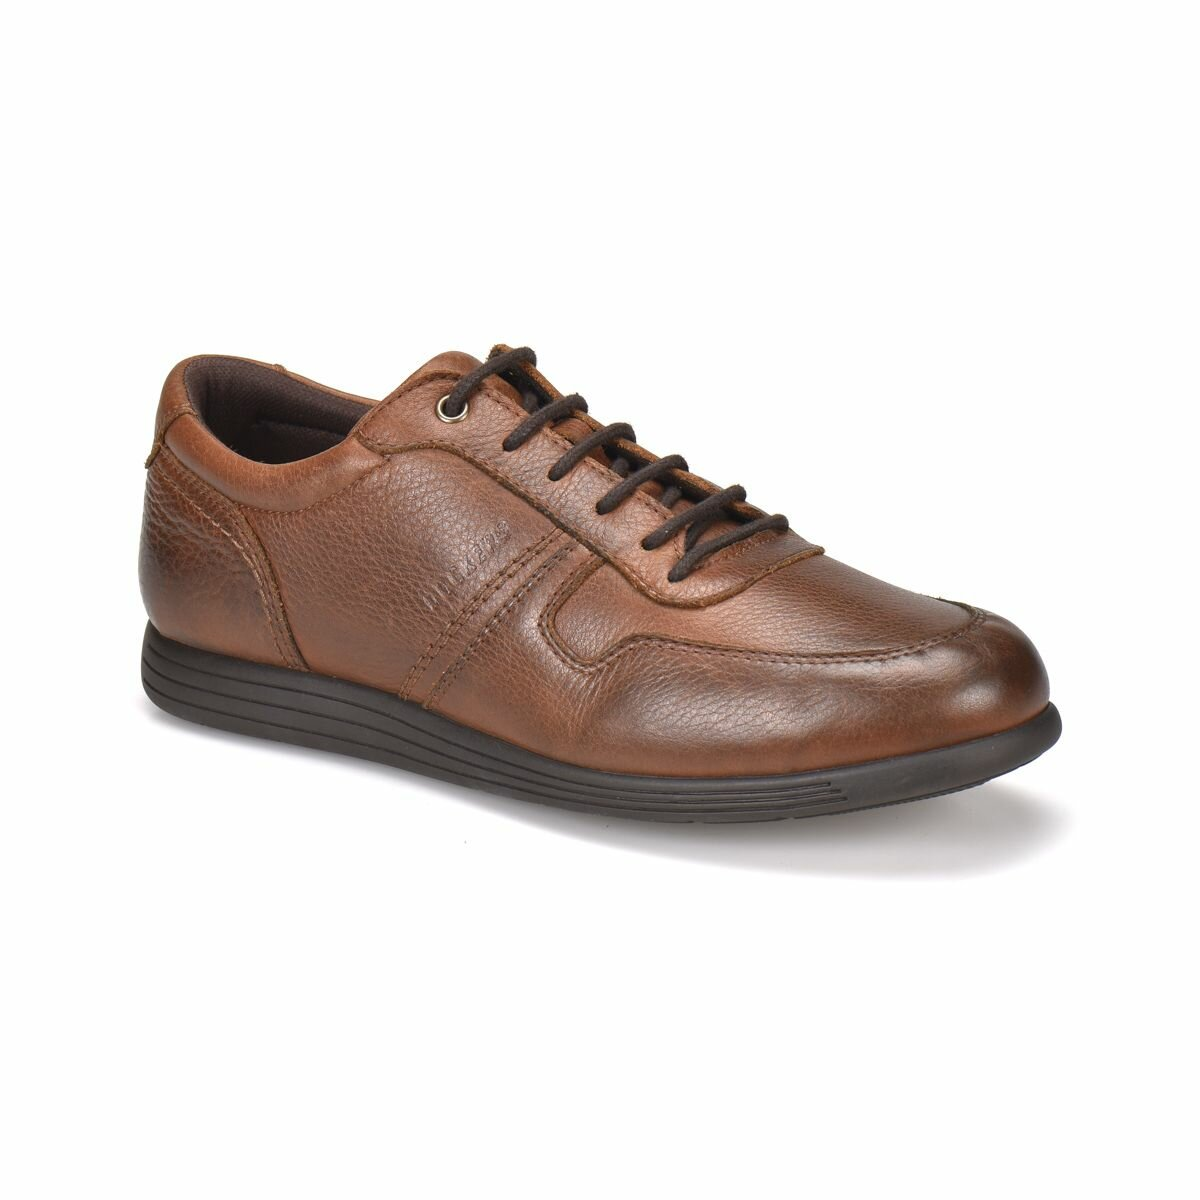 FLO 225040 Tan Men Casual Shoes By Dockers The Gerle